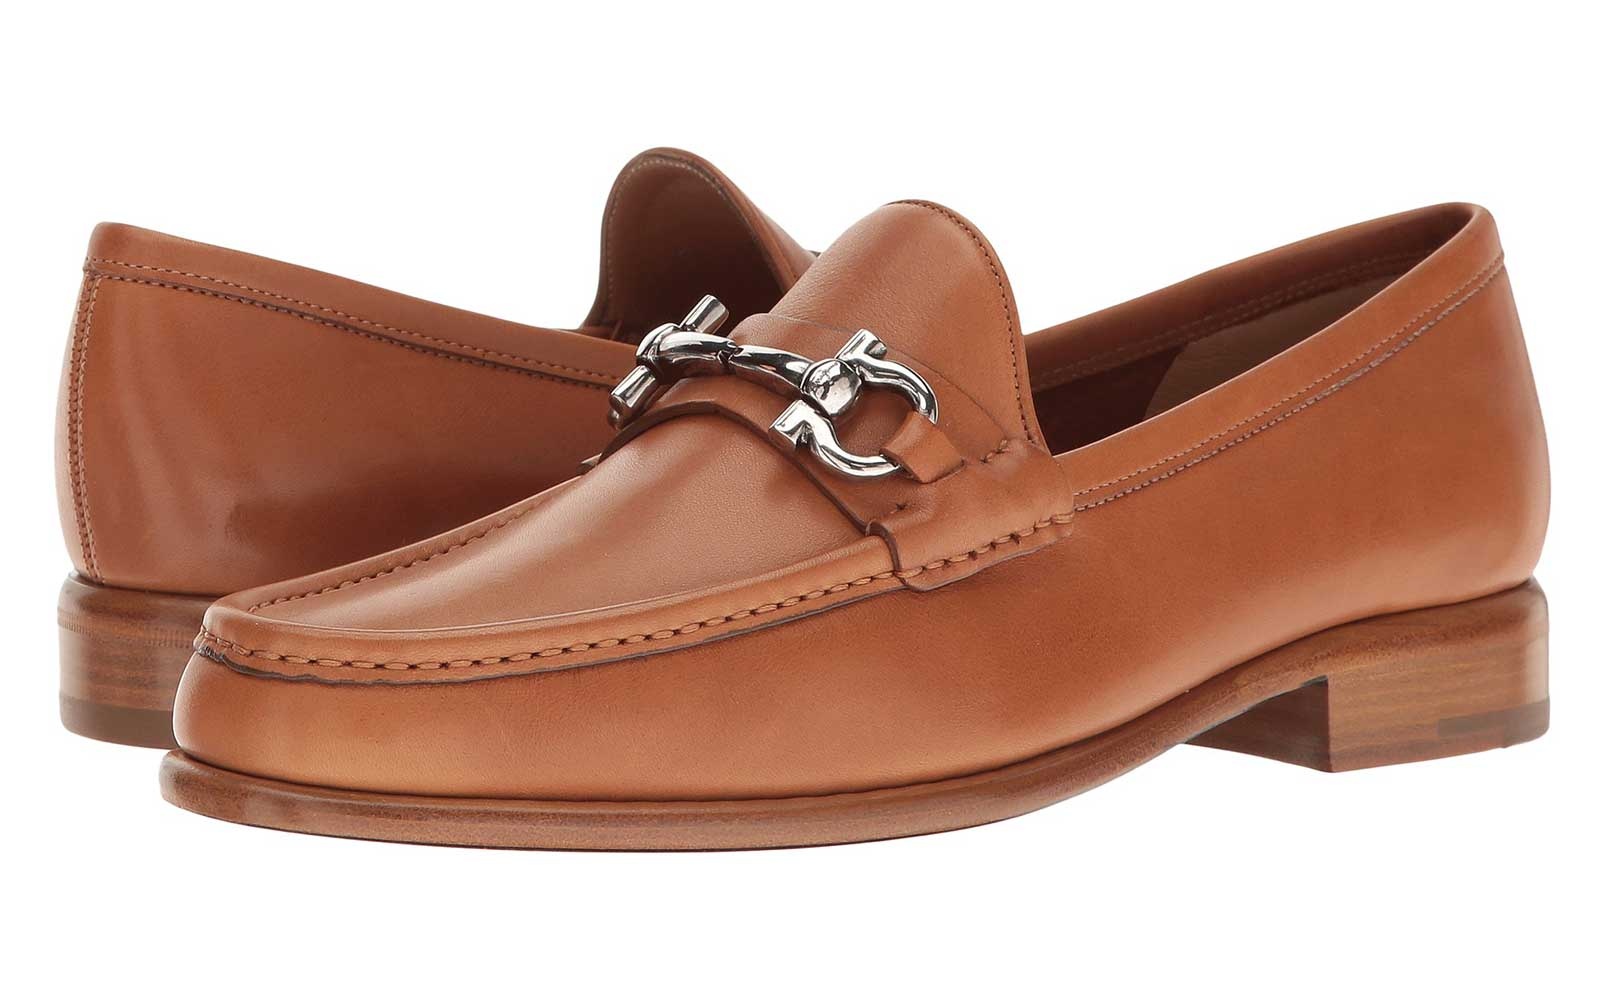 Brown Leather Buckle Loafers for Fall